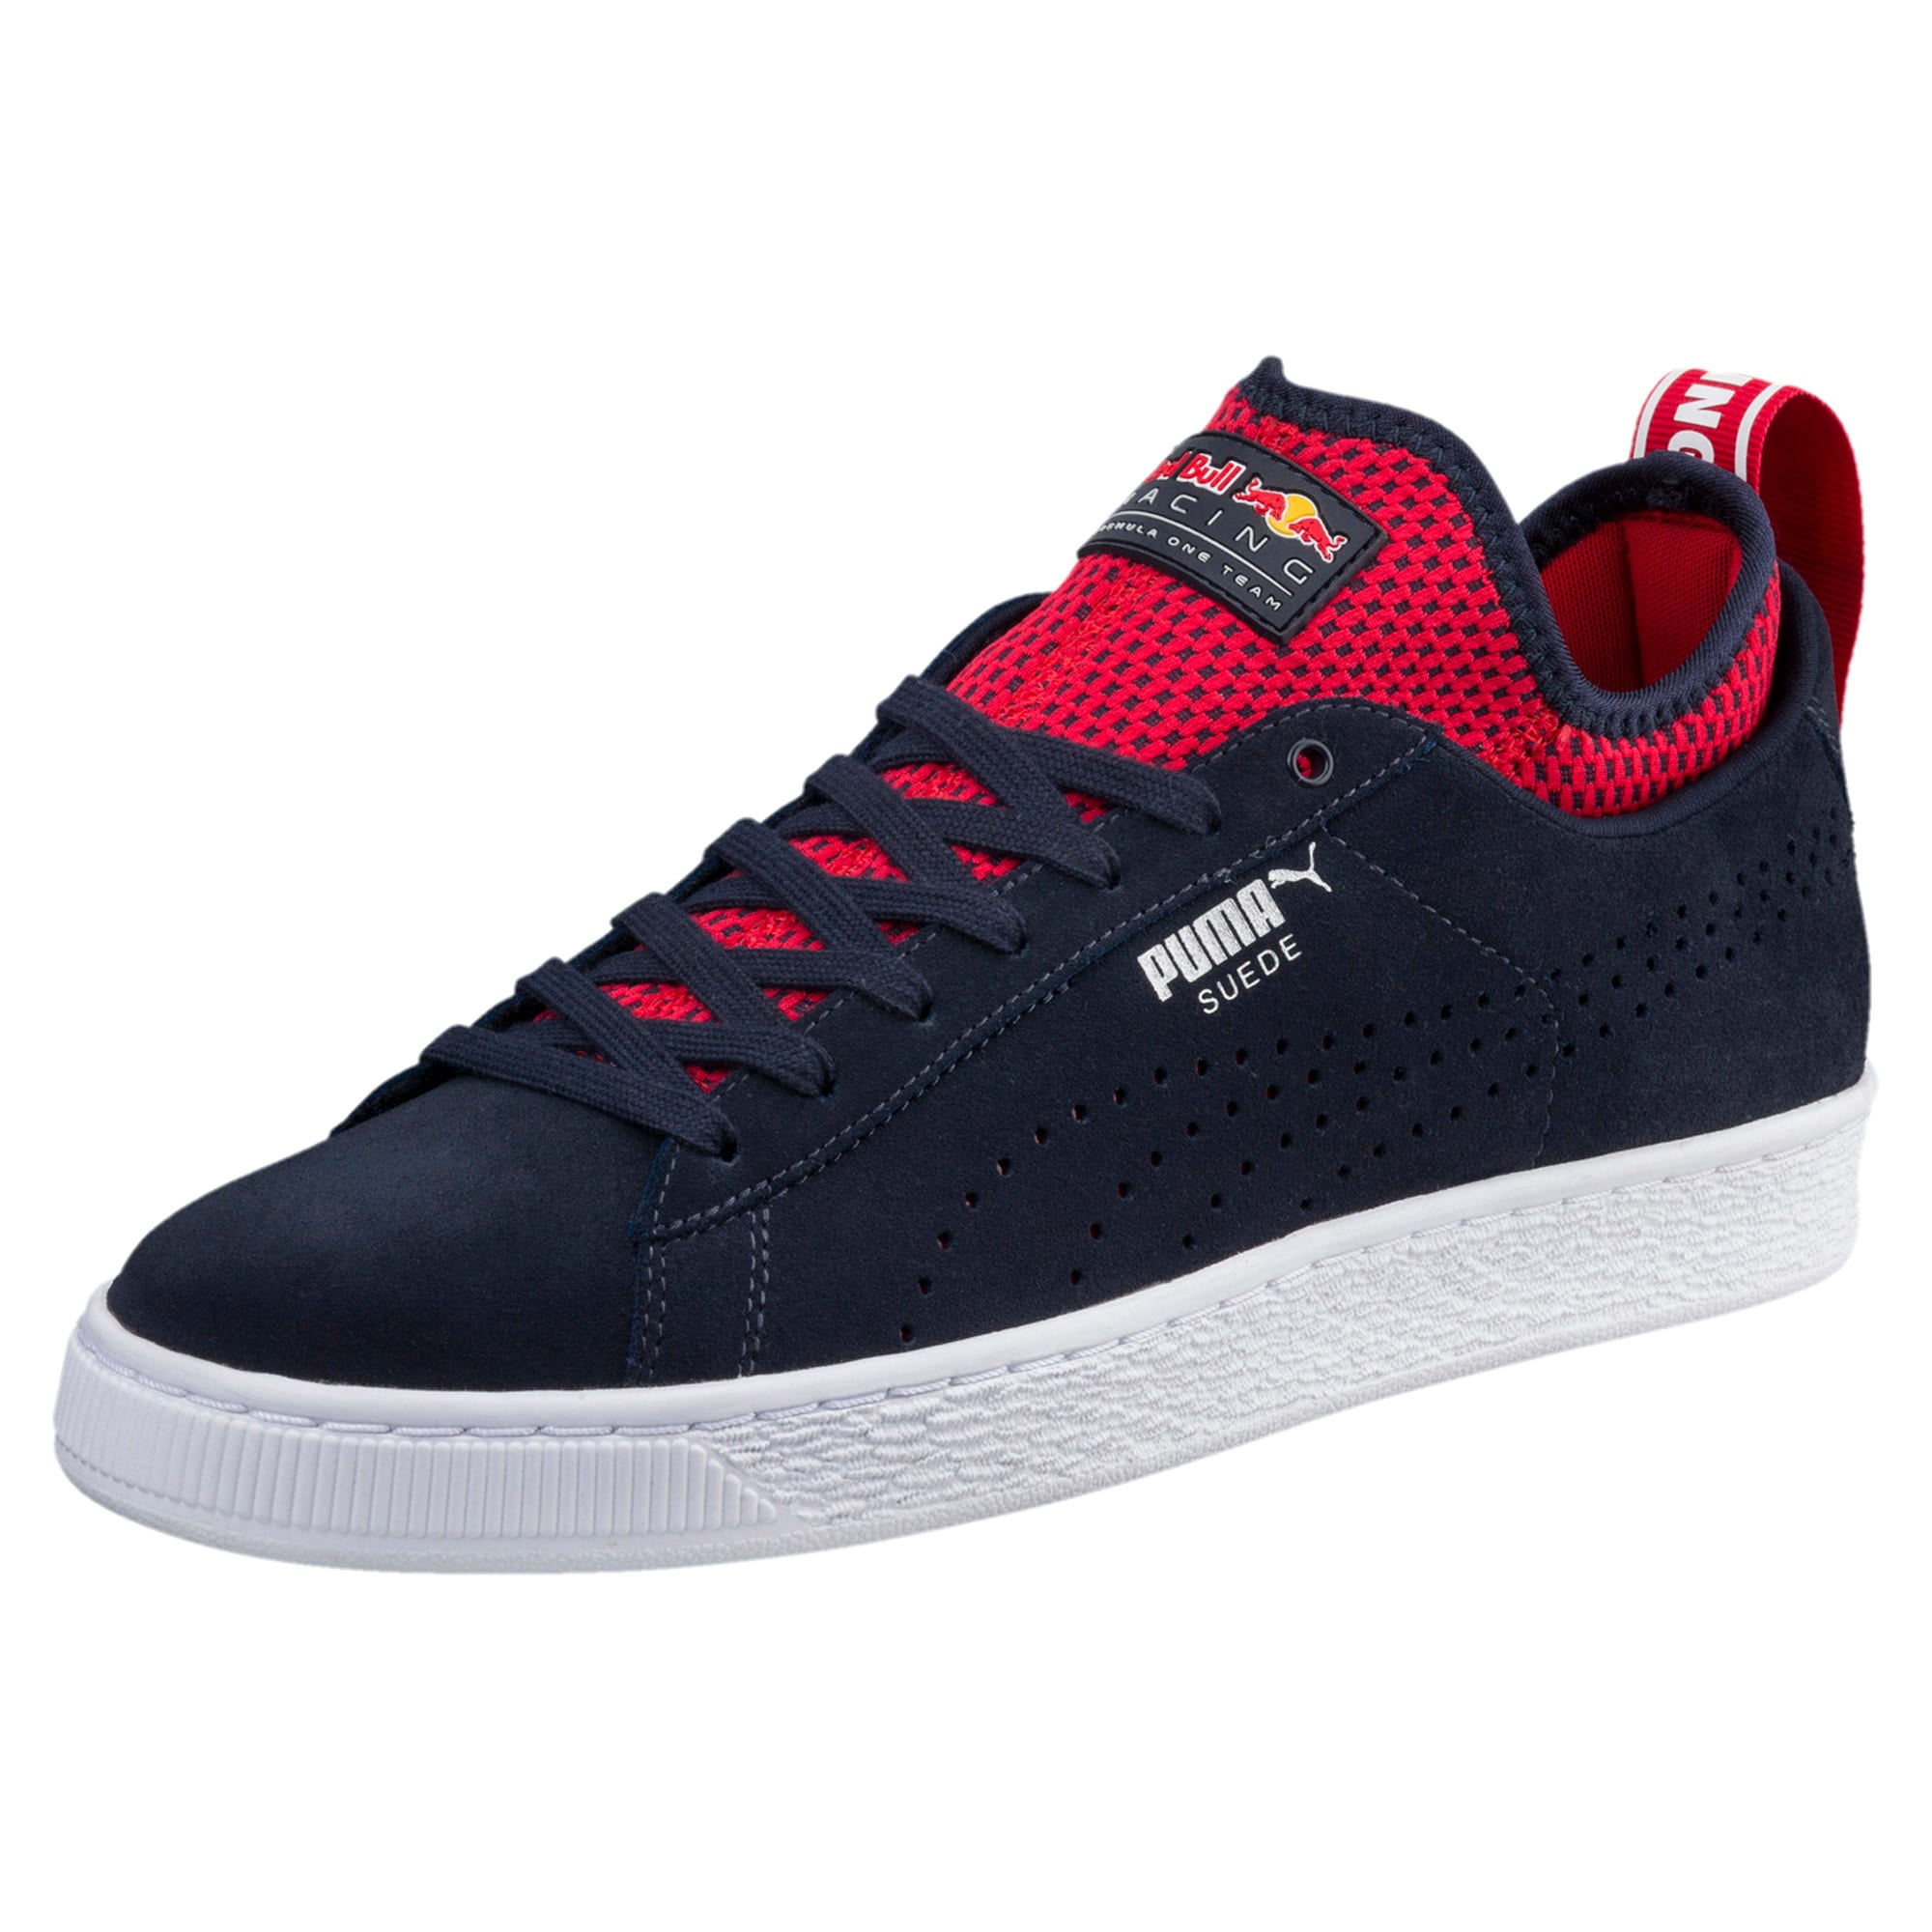 Thumbnail 1 of Red Bull Racing Suede Trainers, NIGHT SKY-Freesia-Chinese Rd, medium-IND